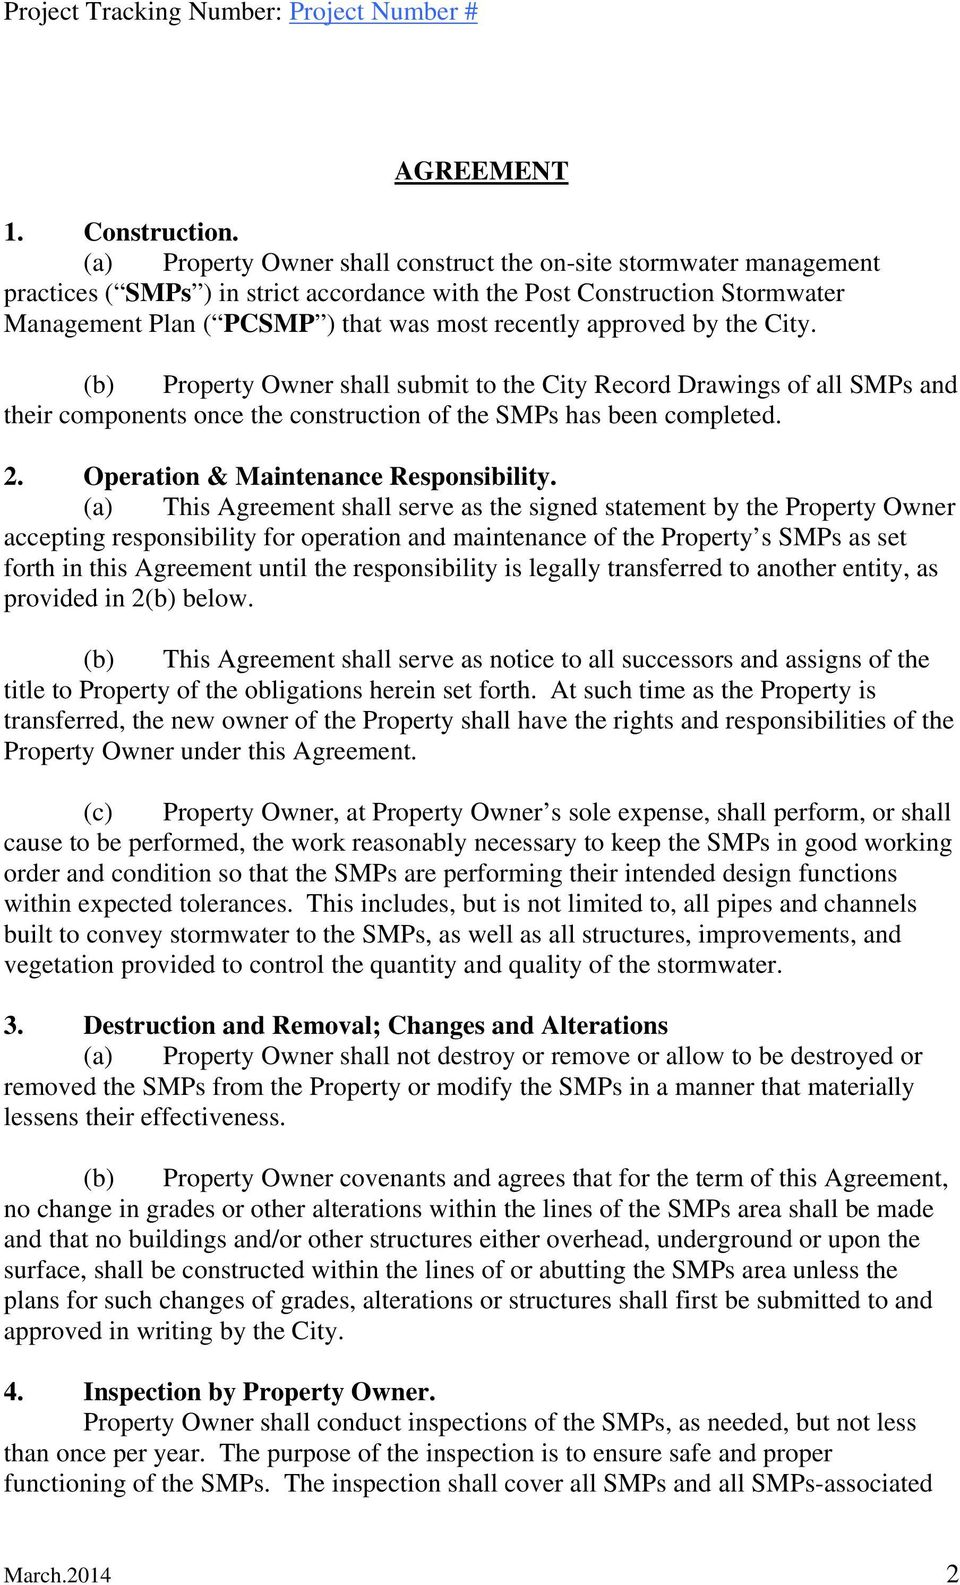 approved by the City. (b) Property Owner shall submit to the City Record Drawings of all SMPs and their components once the construction of the SMPs has been completed. 2.